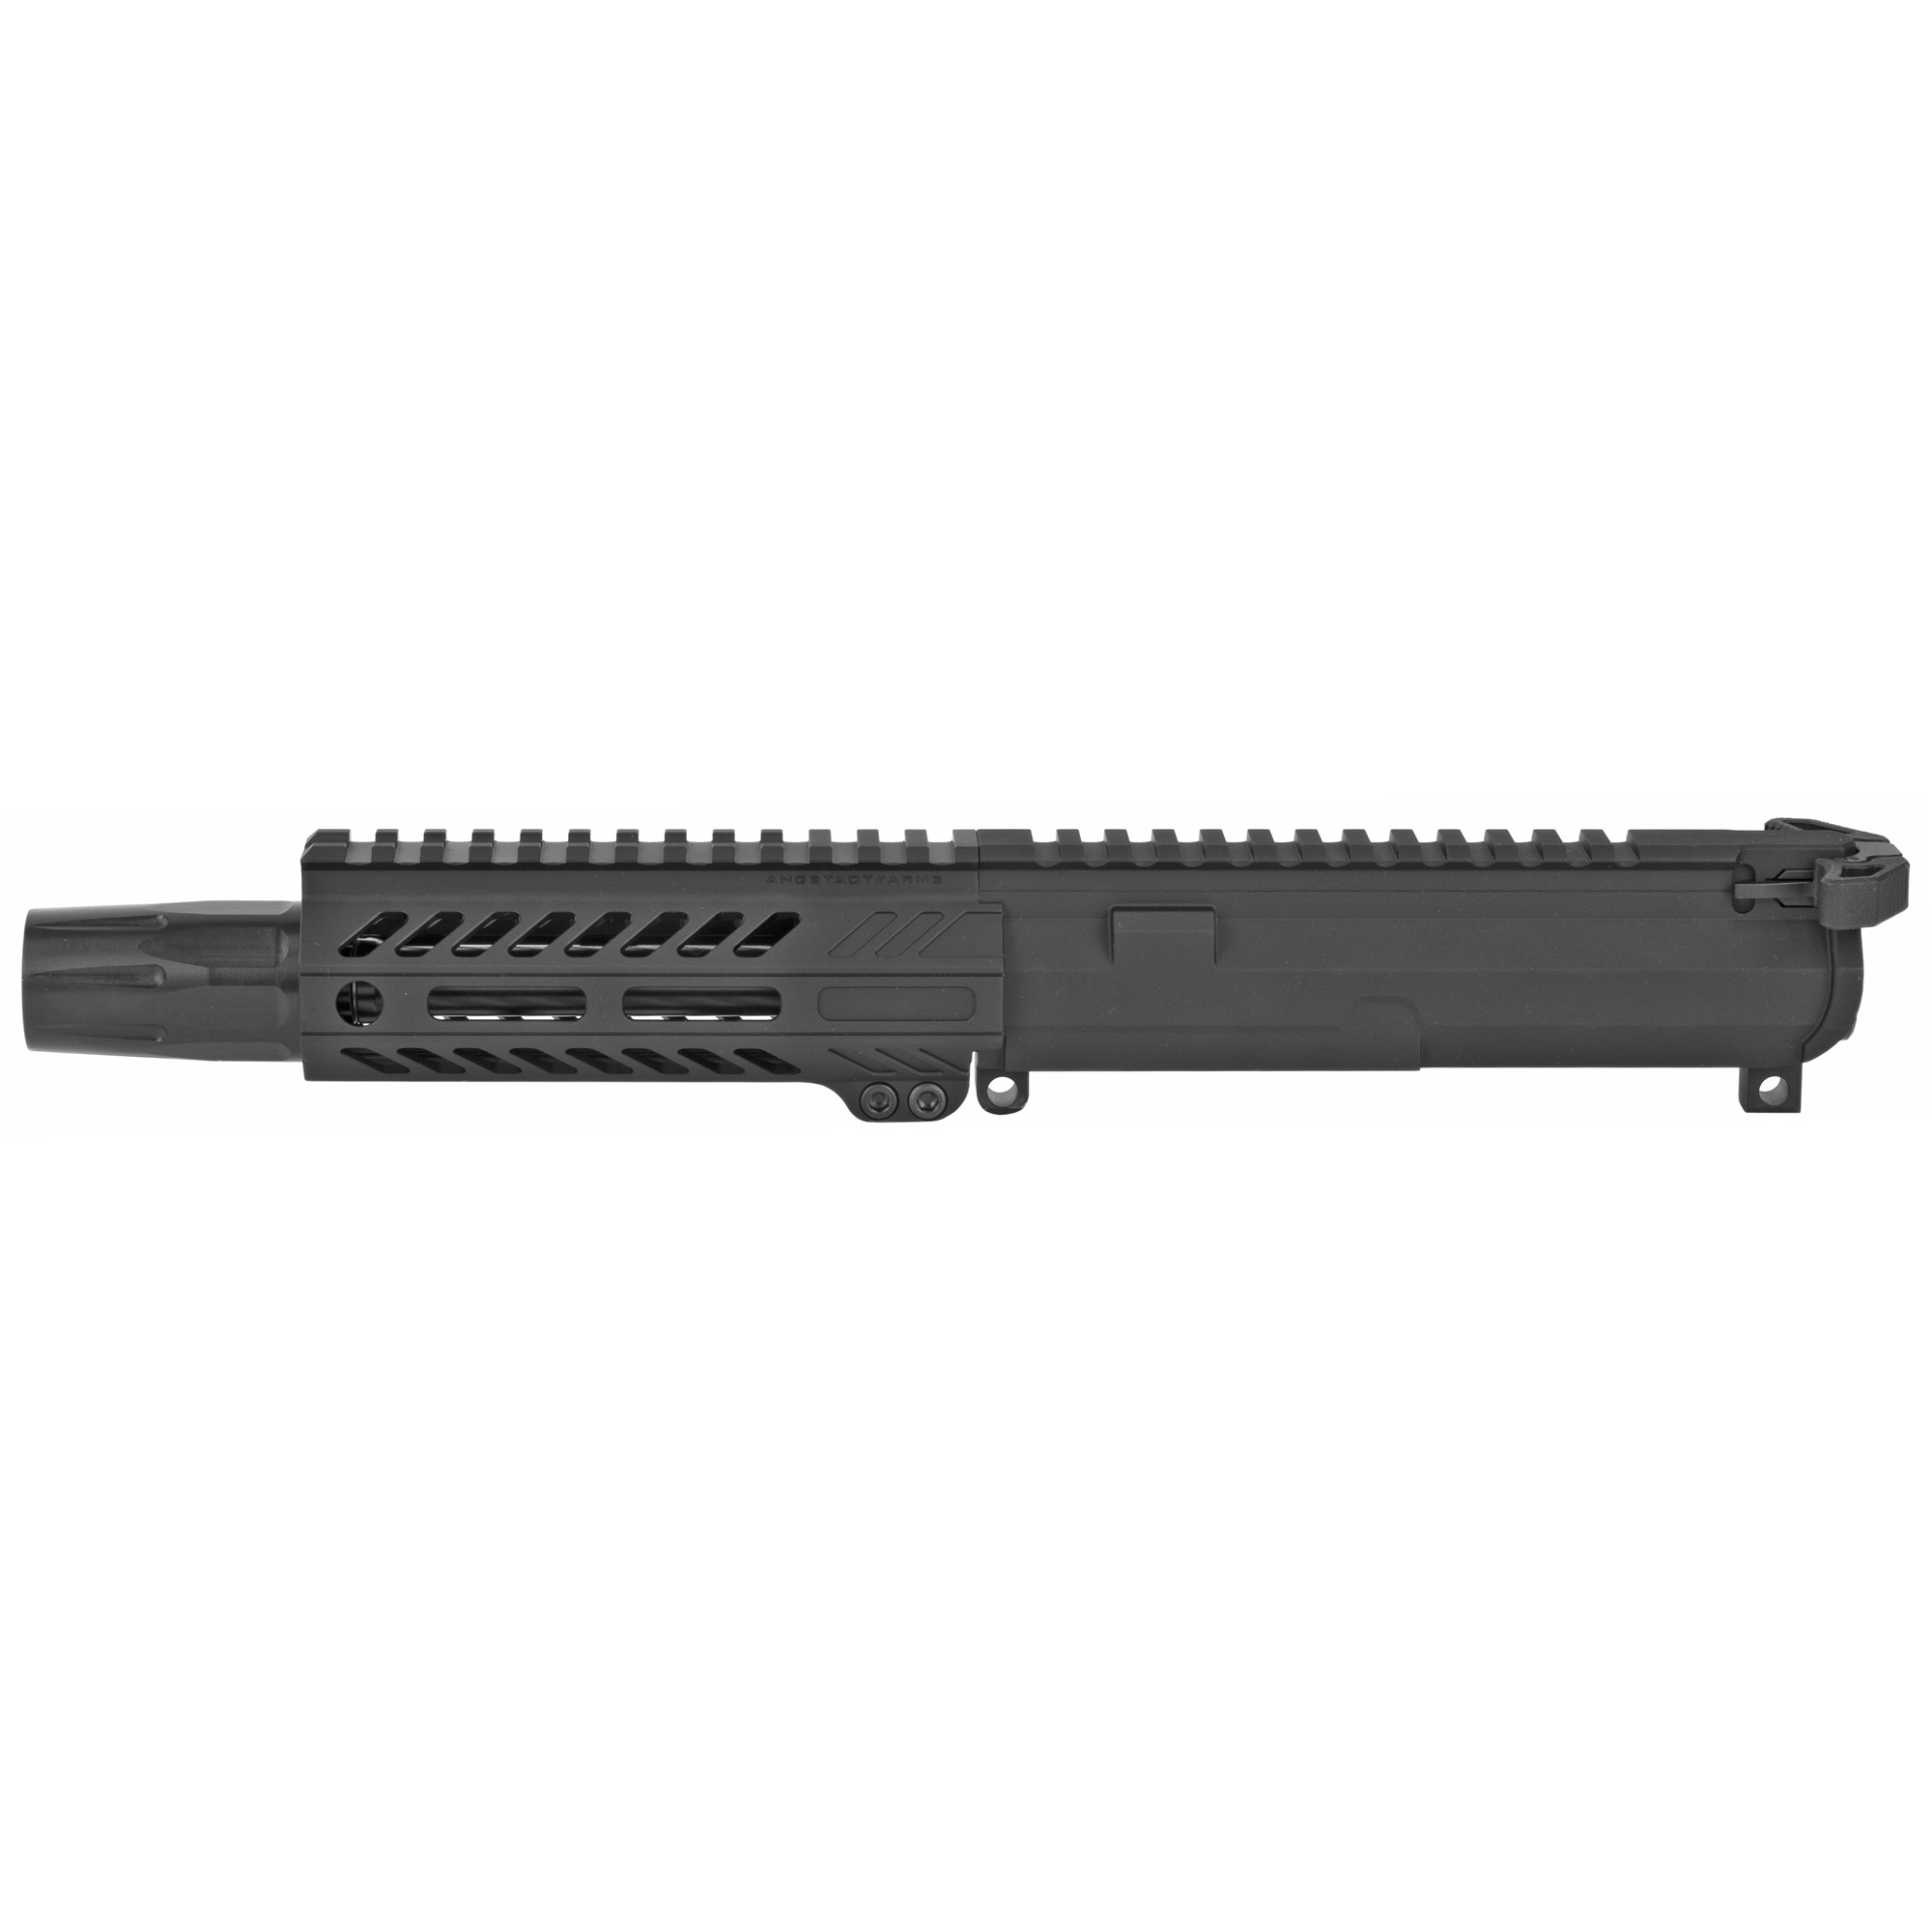 """Angstadt Arms complete upper receiver assembly is ready to run out of the box with a sound suppressor! This pistol upper features a 9mm 3-lug muzzle brake"""" Blastwave blast shield and Radian Weapons Ambidextrous charging handle. Compatible with any 9mm GLOCK(R) and COLT(R) style AR-15 lower receiver. Complete 9mm upper receiver assembly with 6"""" barrel"""" 5.5"""" ultra light hand guard and Radian ambi charging handle. Ready to run with a 9mm sound suppressor via 3-lug."""